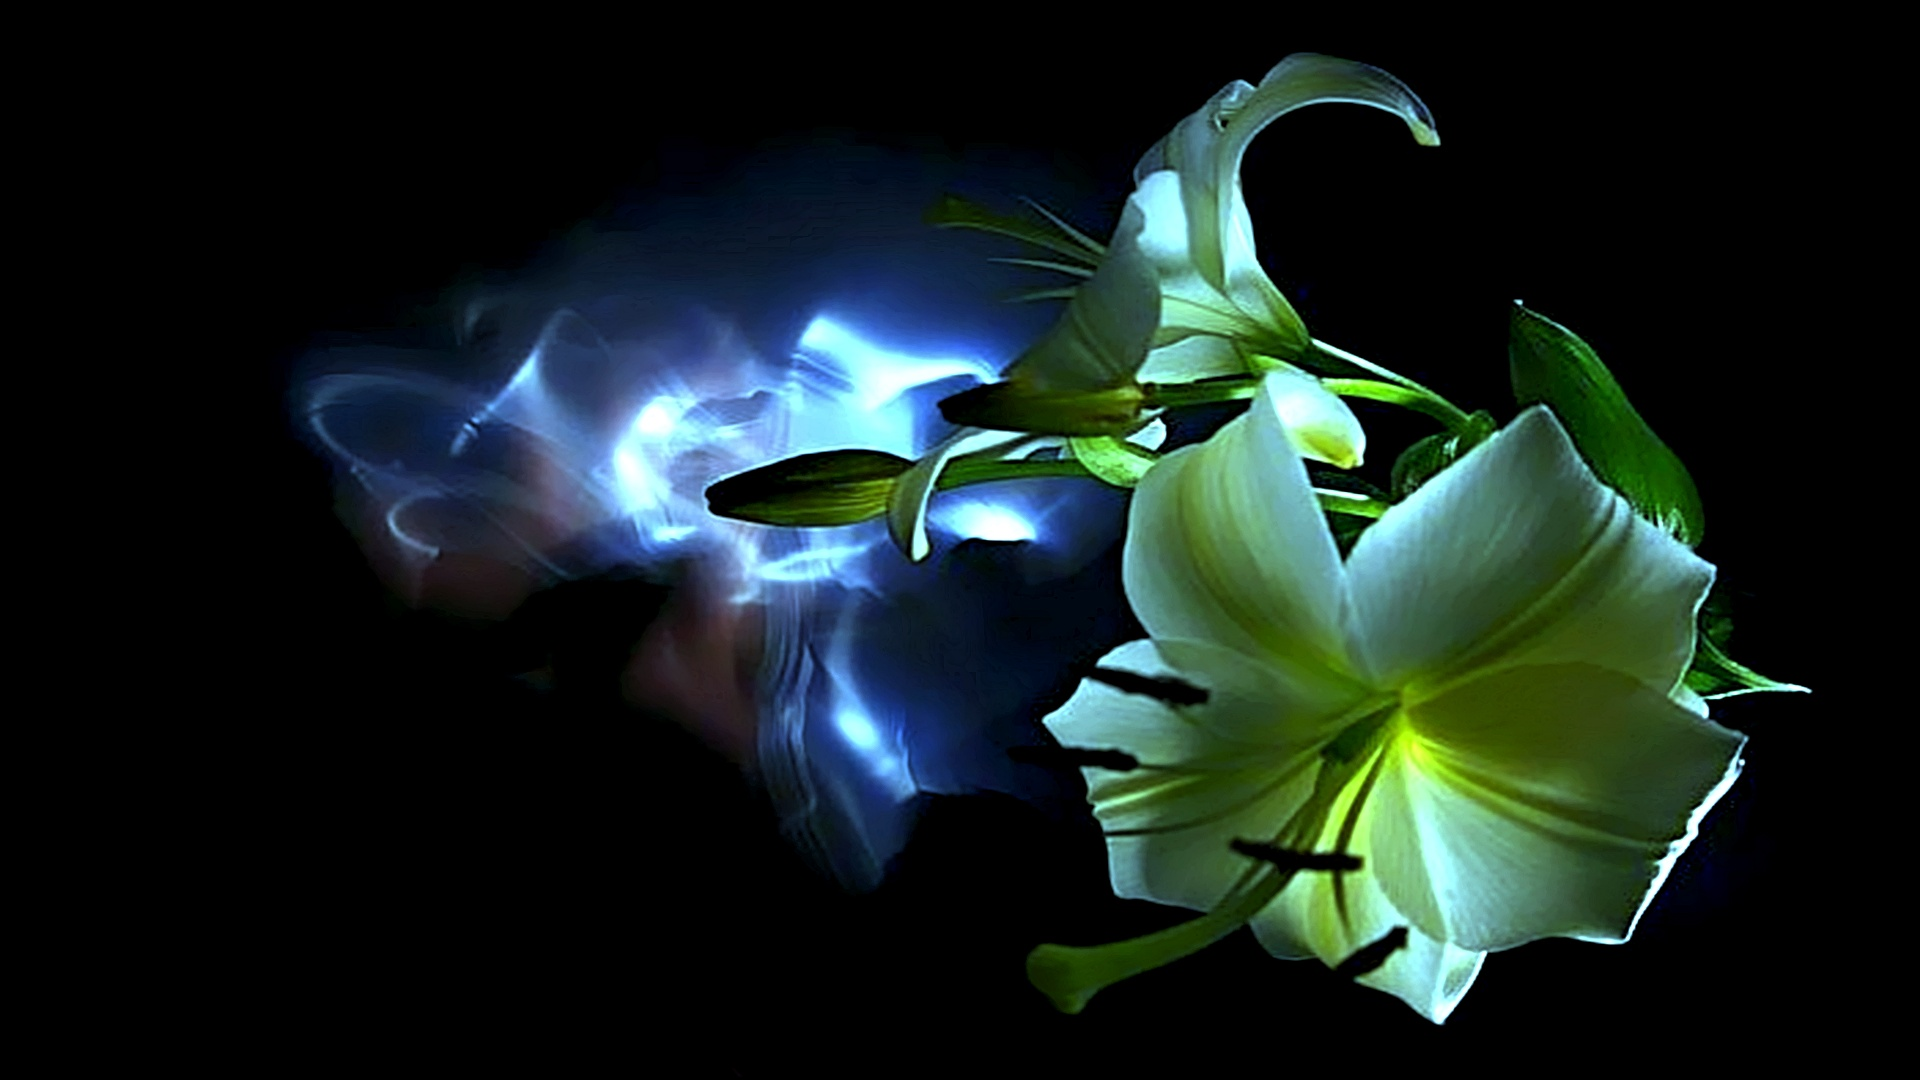 abstract neon flower hd wallpaper background Car Tuning 1920x1080